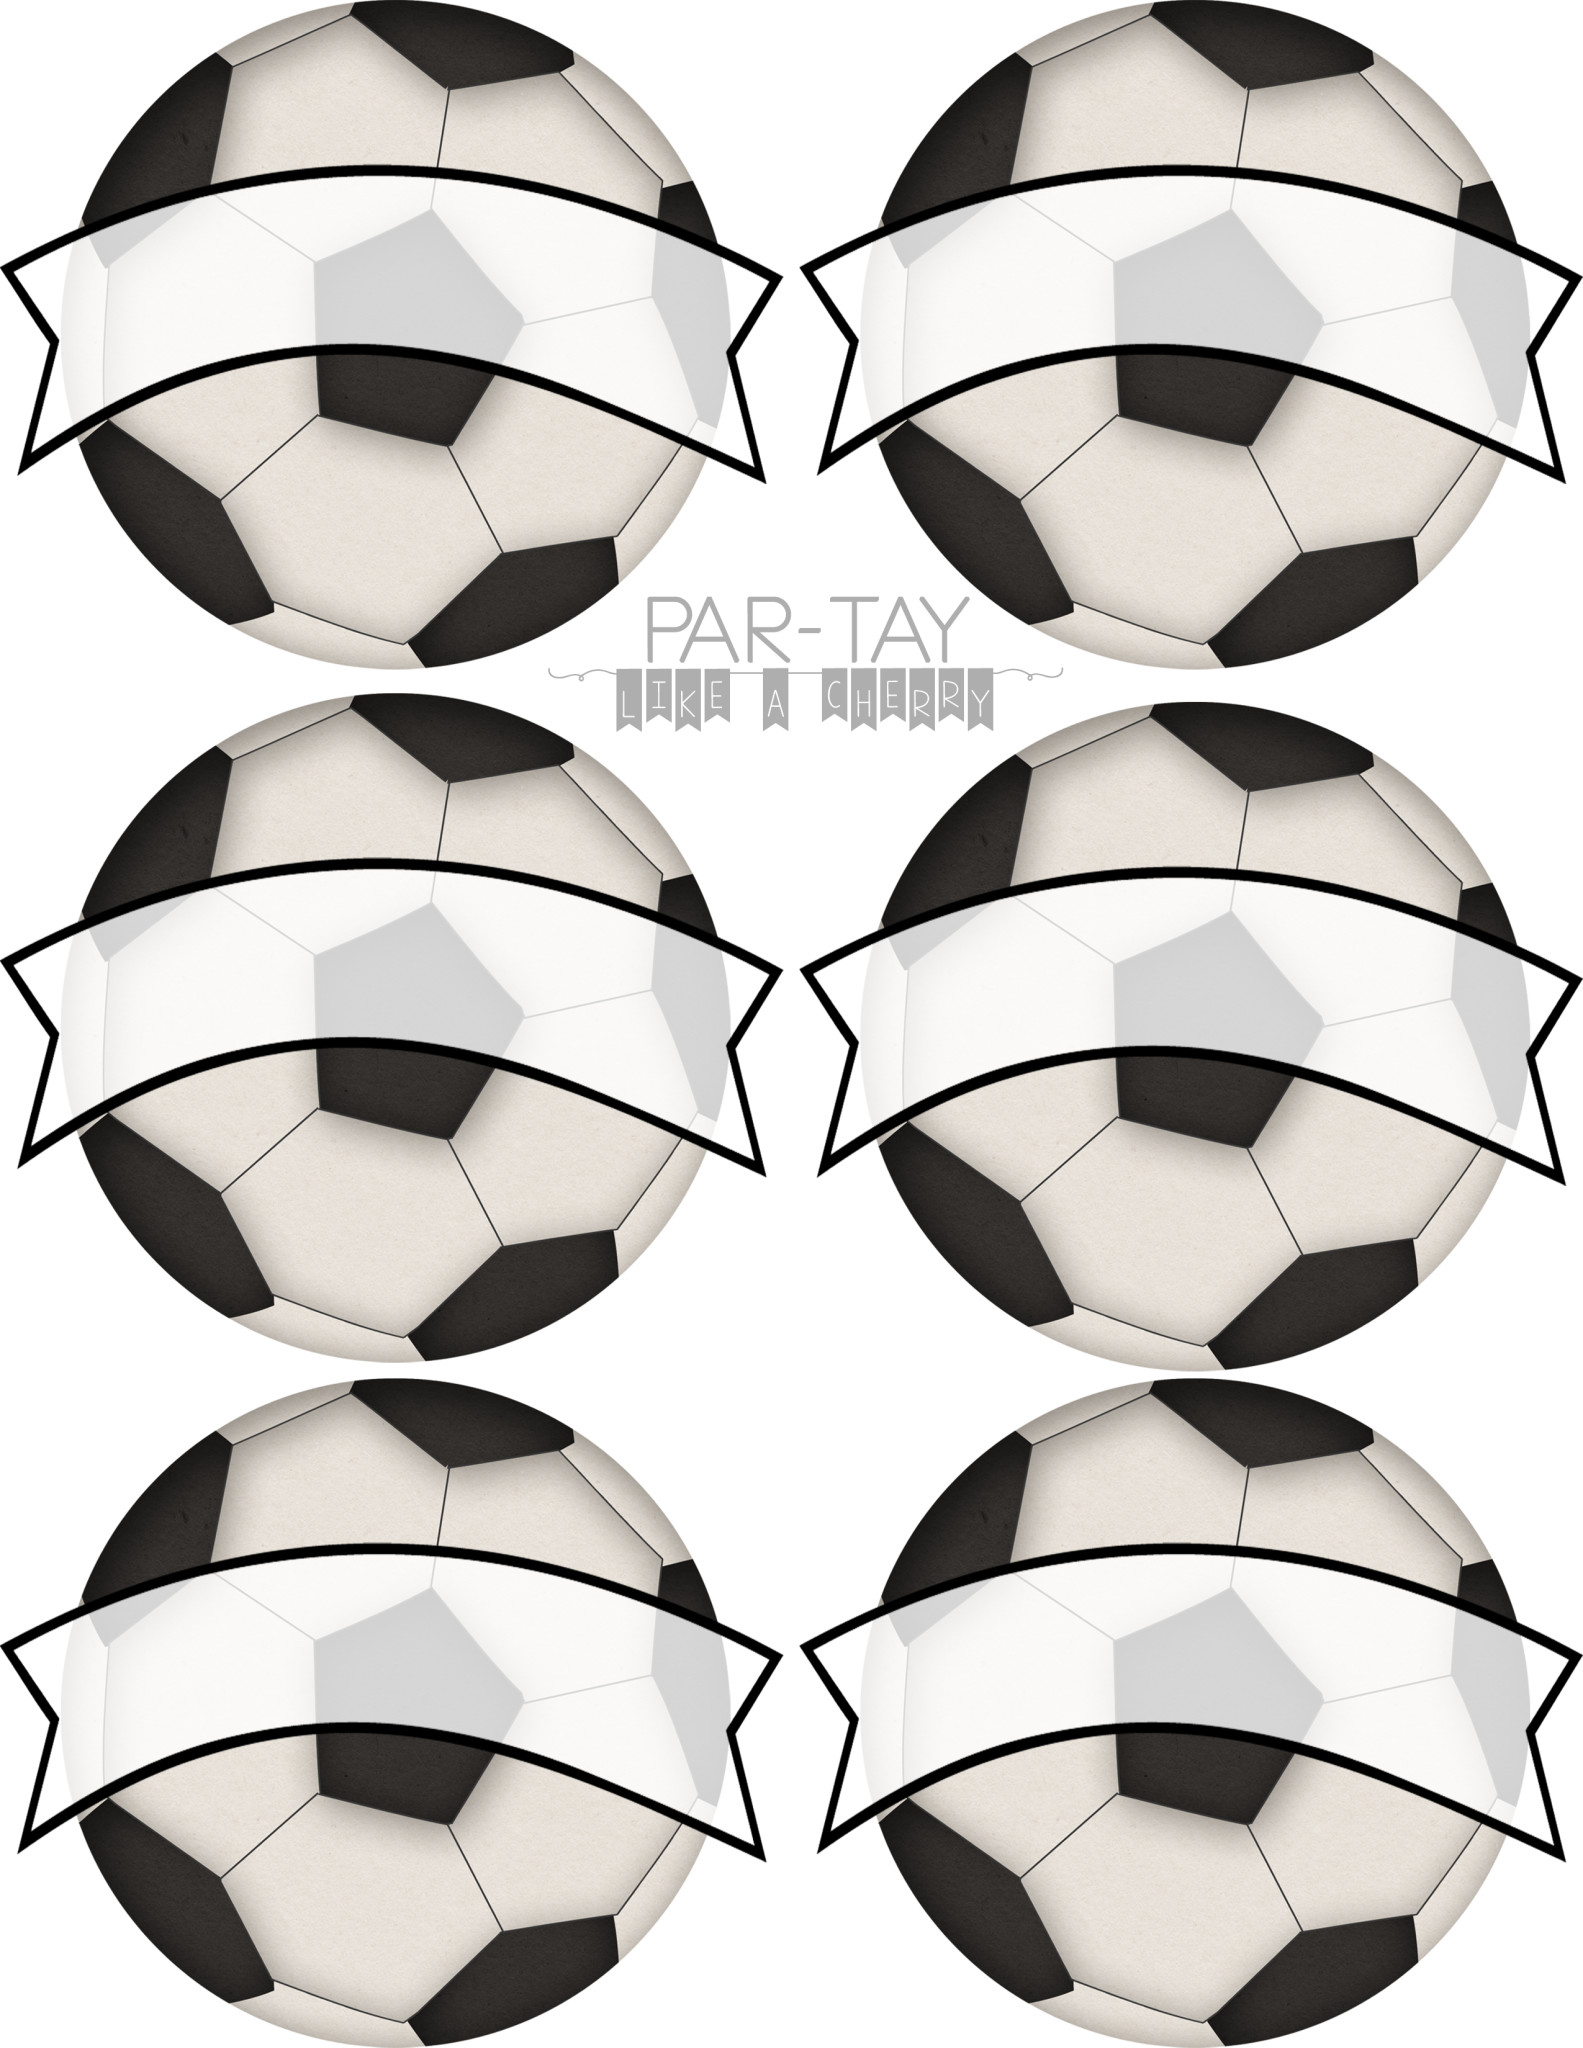 Soccer Party Treat Bags with Stickers, Thanks for Coming to My Party, Hope you HAD A BALL!, Green and White Rugby Stripe, Set of 48 Bags and 48 Stickers.